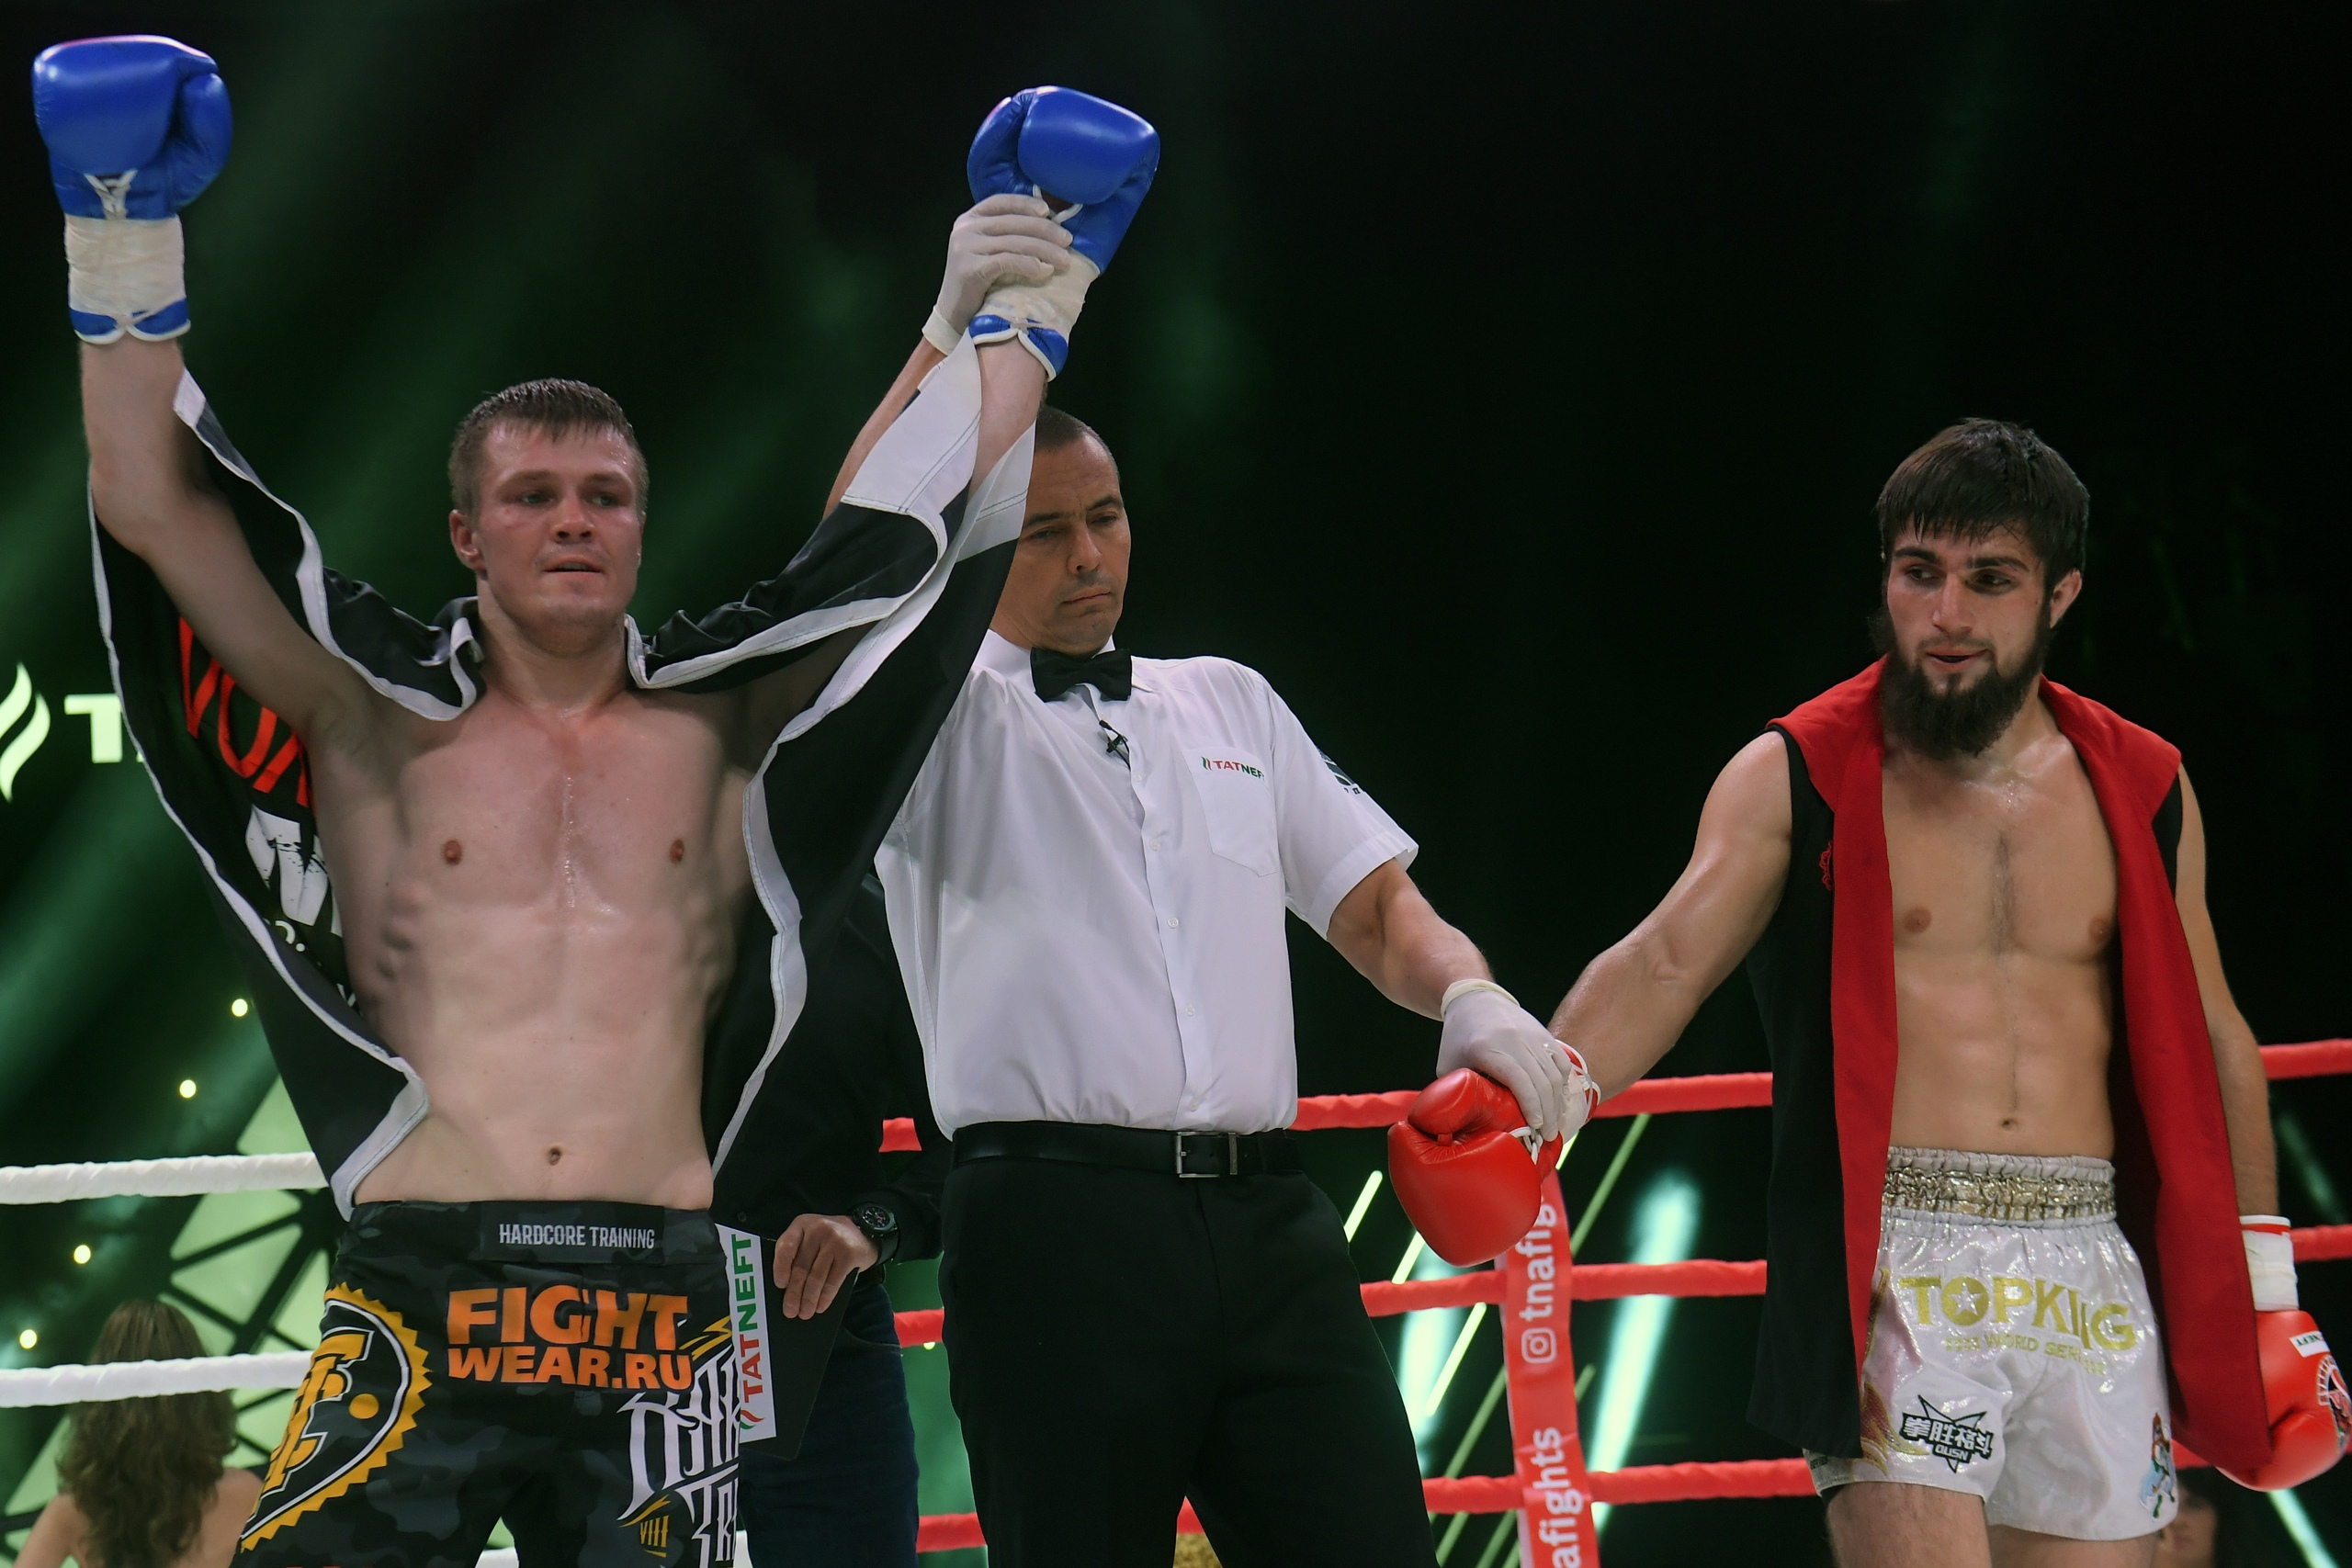 kickbox moscow winner